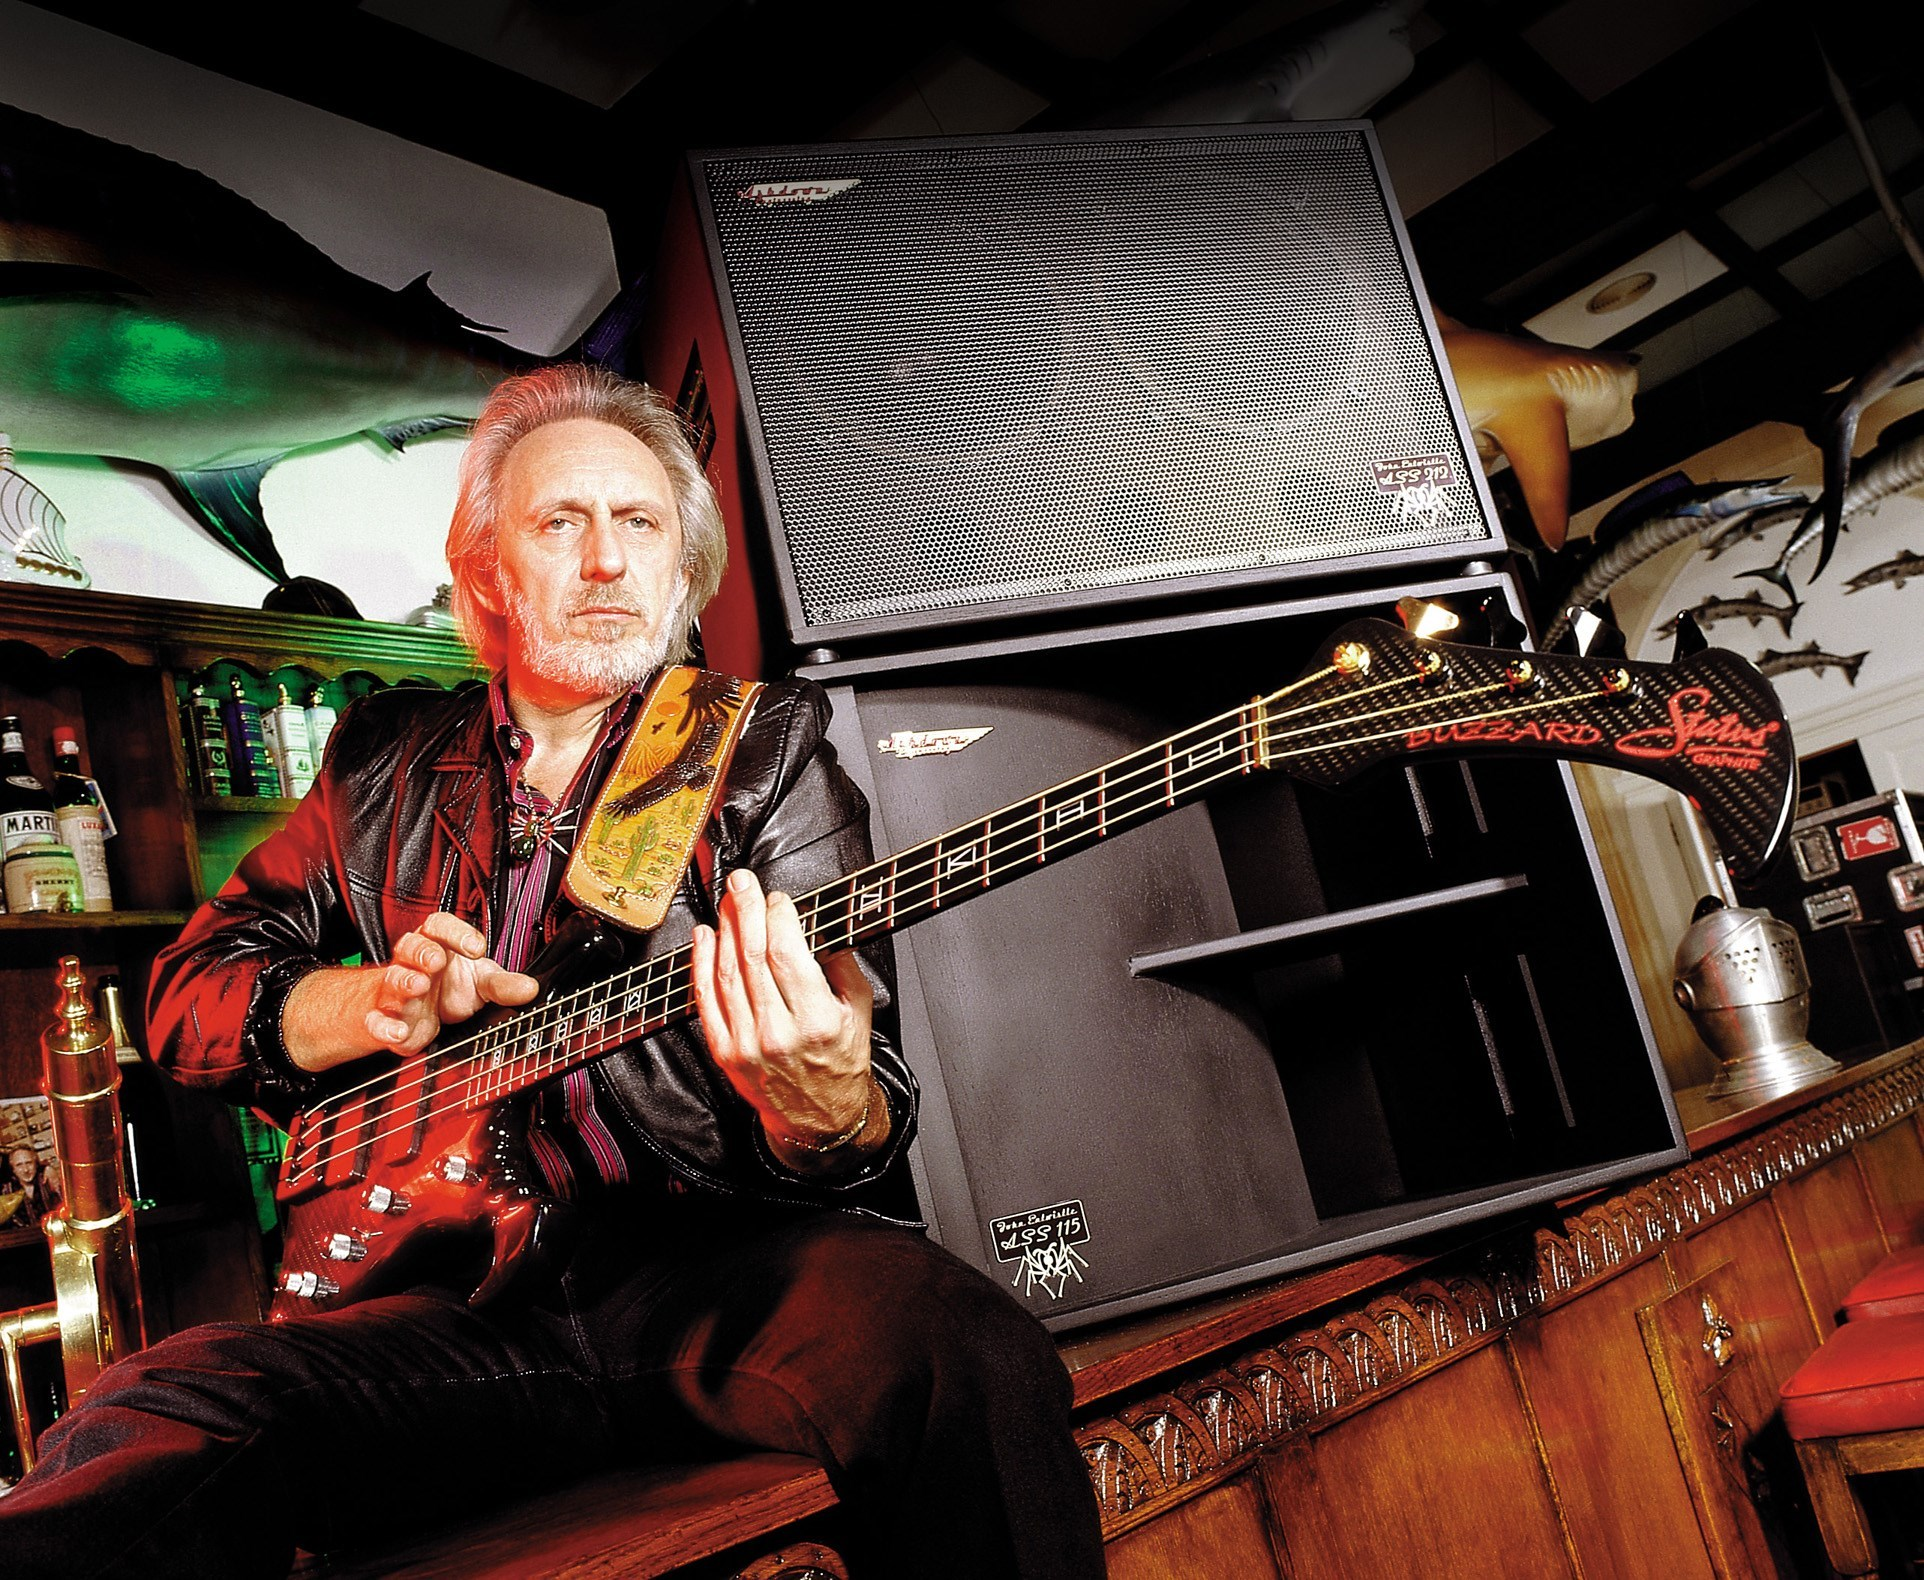 Animated Heart Wallpaper John Entwistle Known People Famous People News And